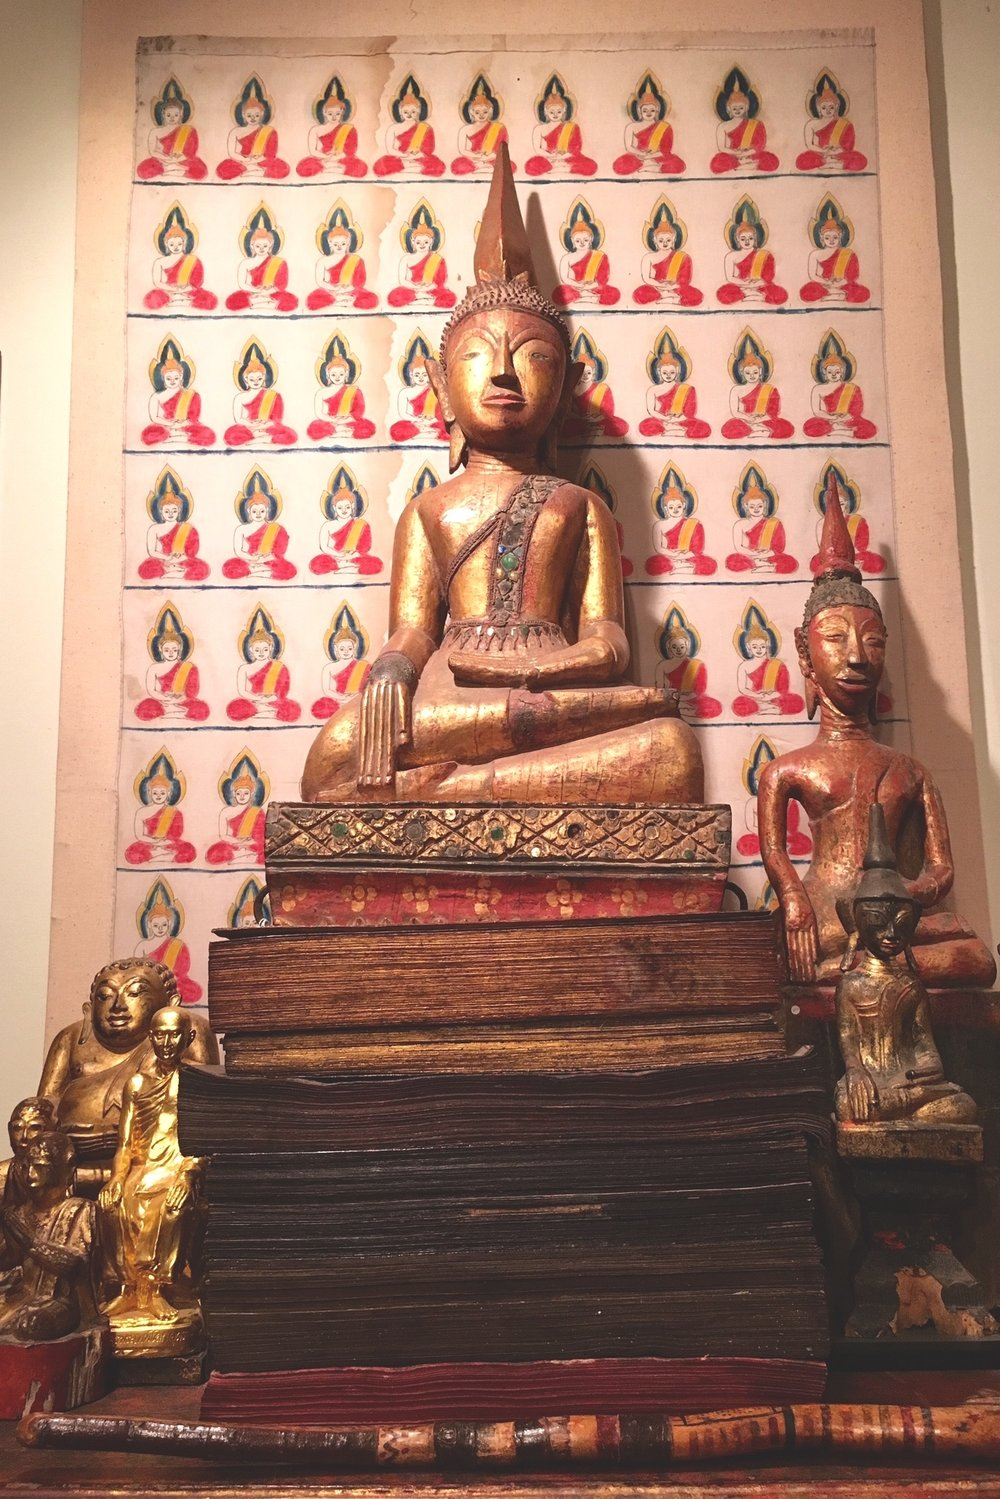 Buddhas, Buddhist manuscripts and painting of Buddhas, Siam, Burma, Laos, circa 1900 to early 20th century.